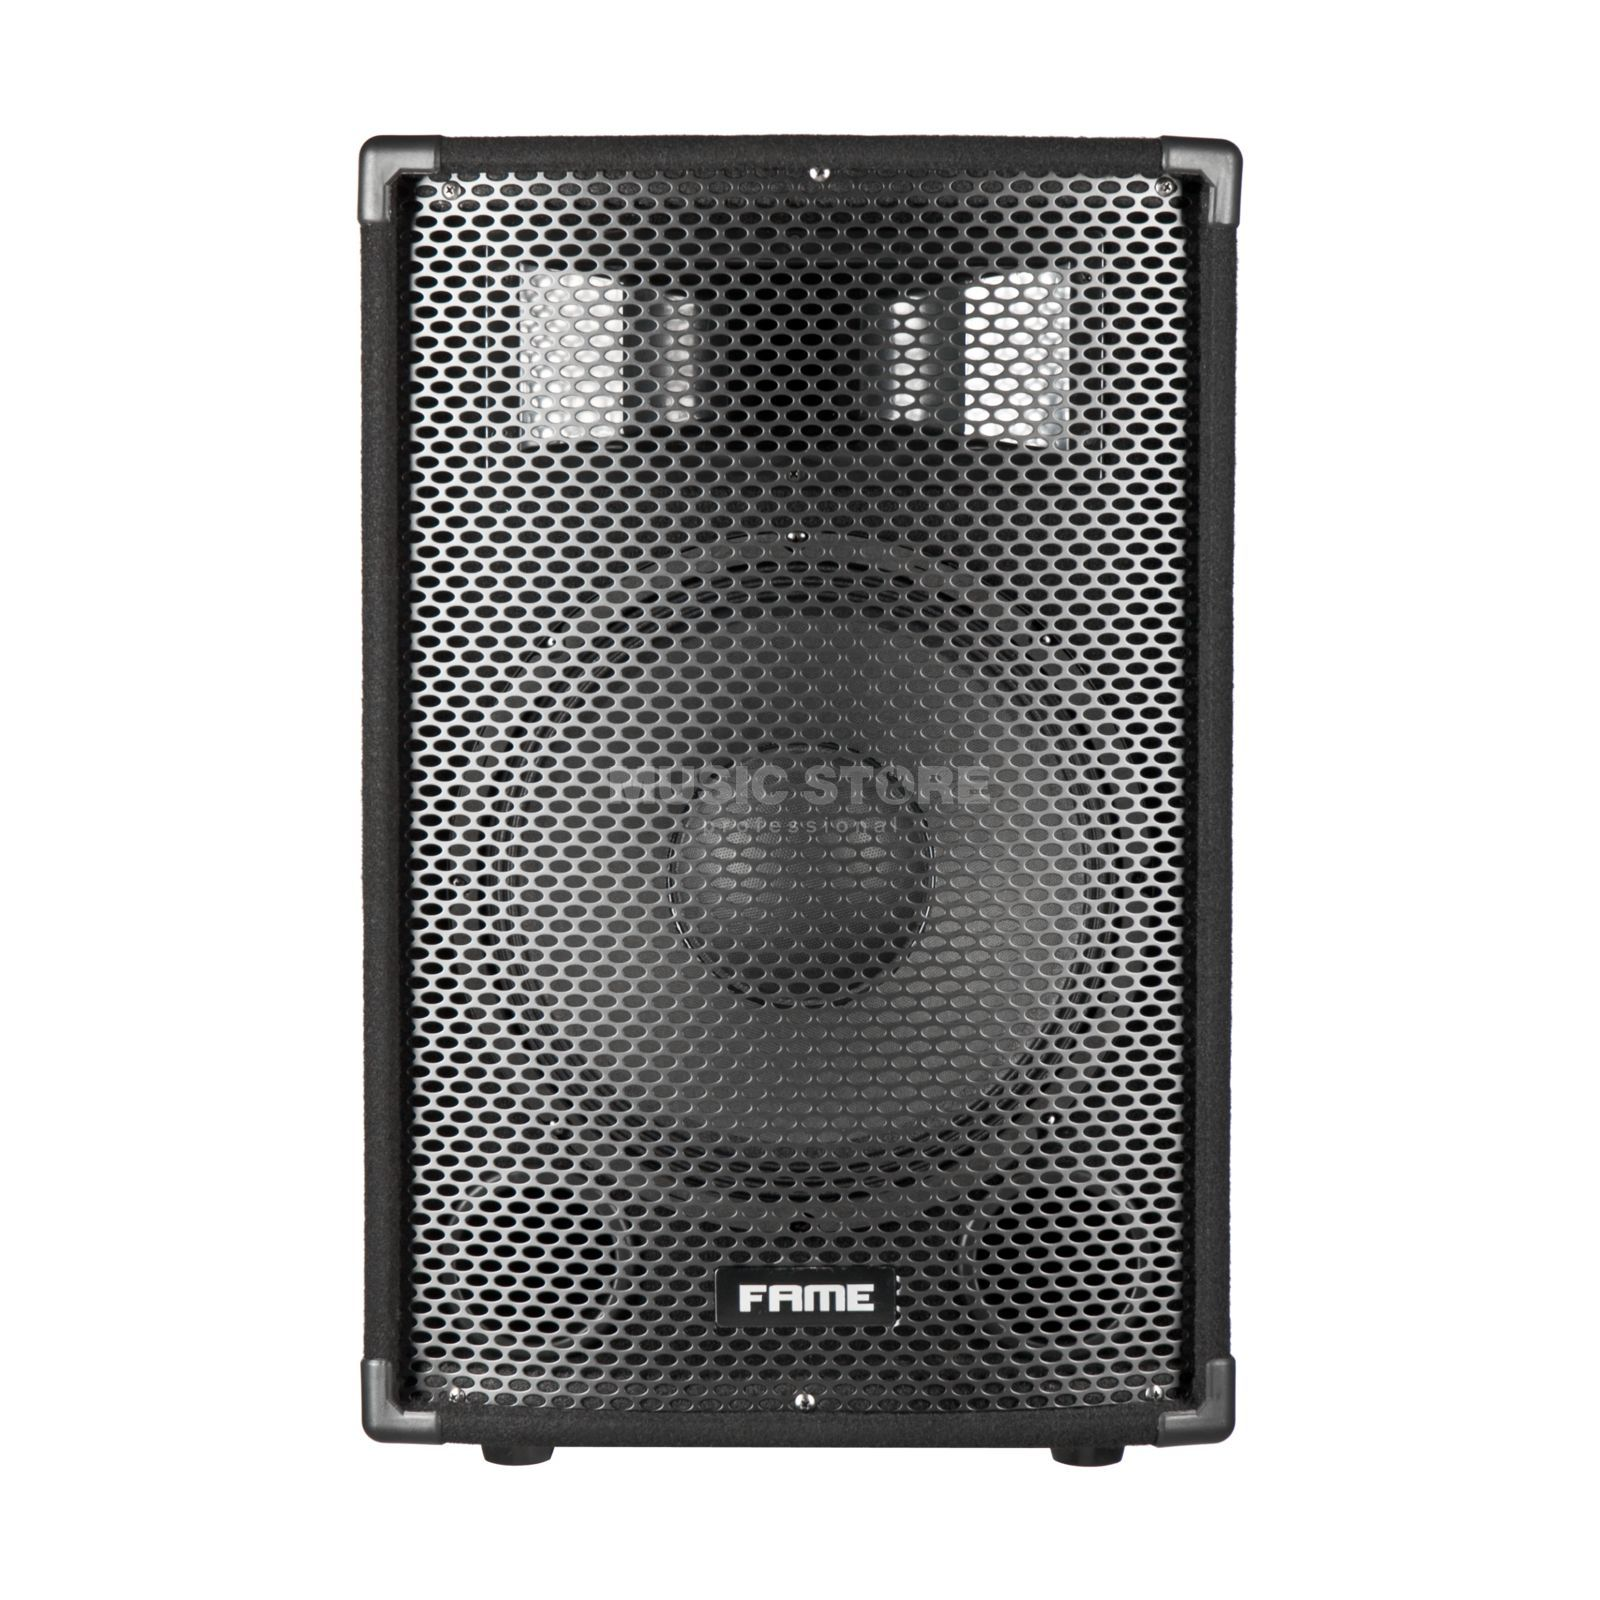 "Fame audio MC 12 PLUS MKII 12"" Passive Speaker Изображение товара"